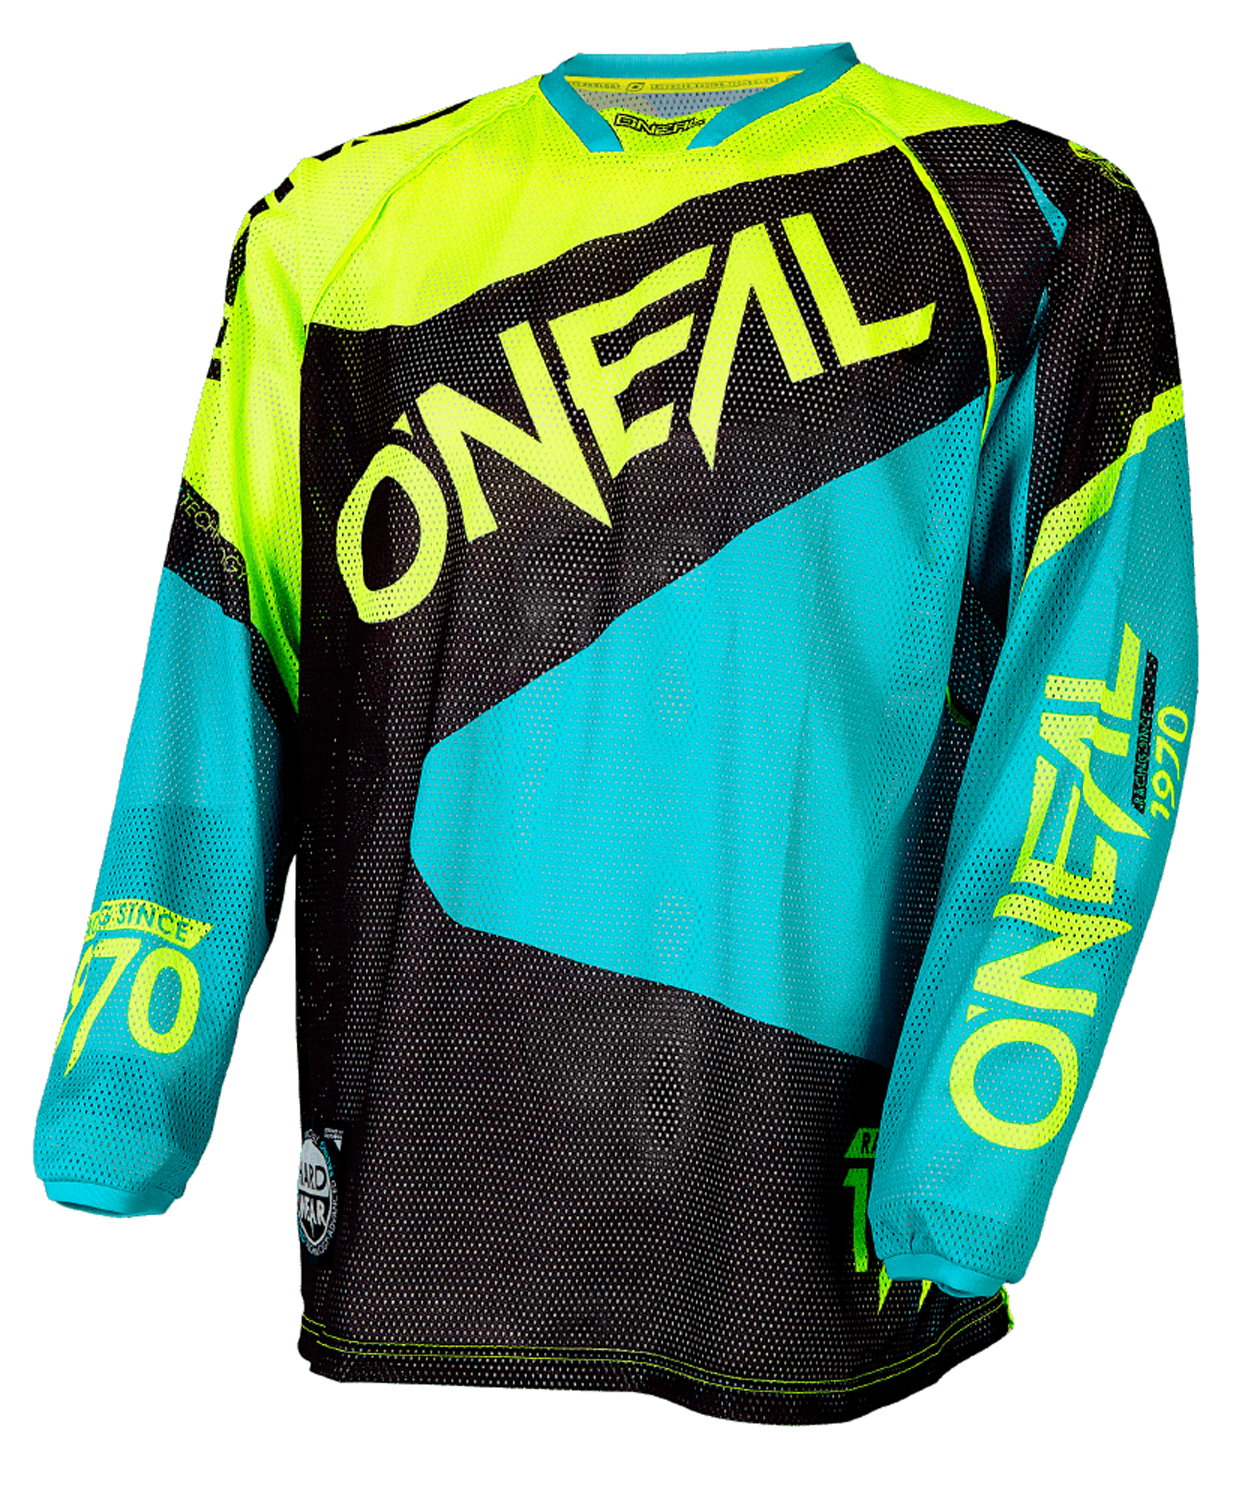 O´Neal Jersey Hardwear Gelb/Teal - Limited Edition Flow